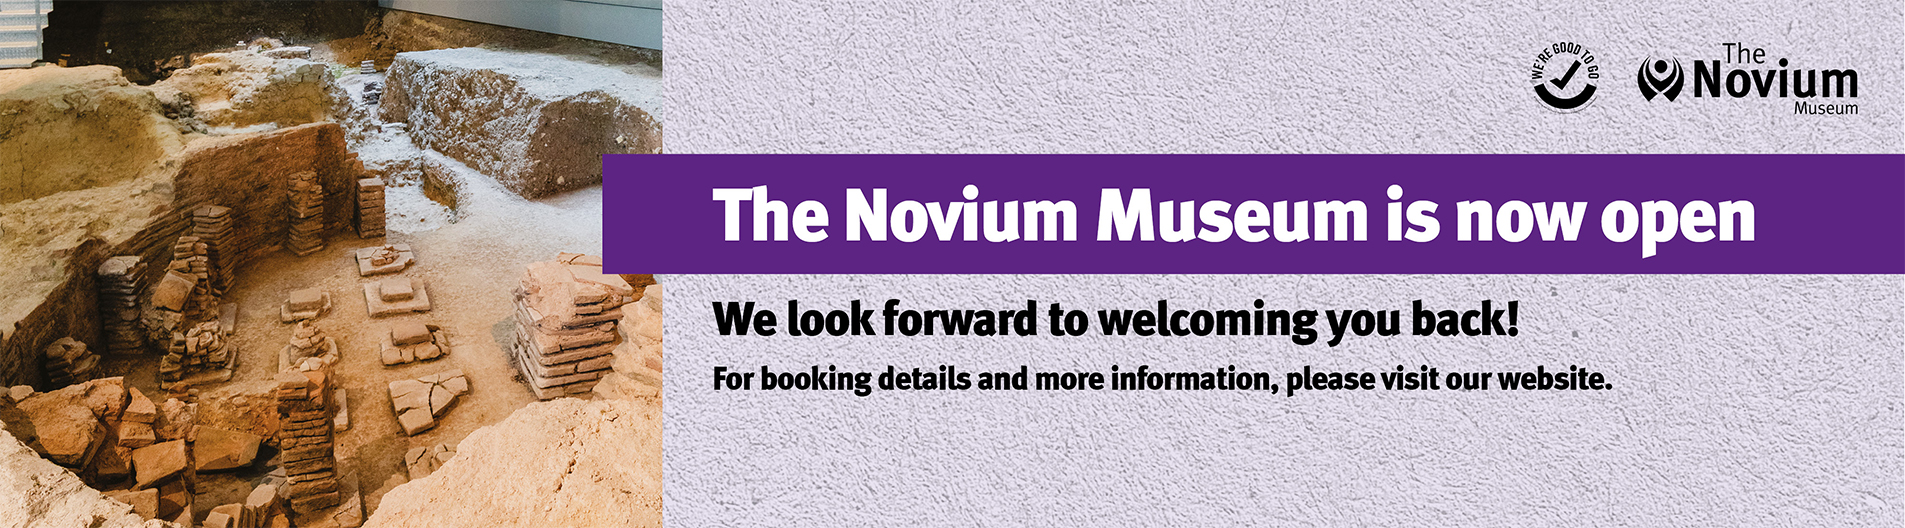 The Novium Museum reopens on 28 July